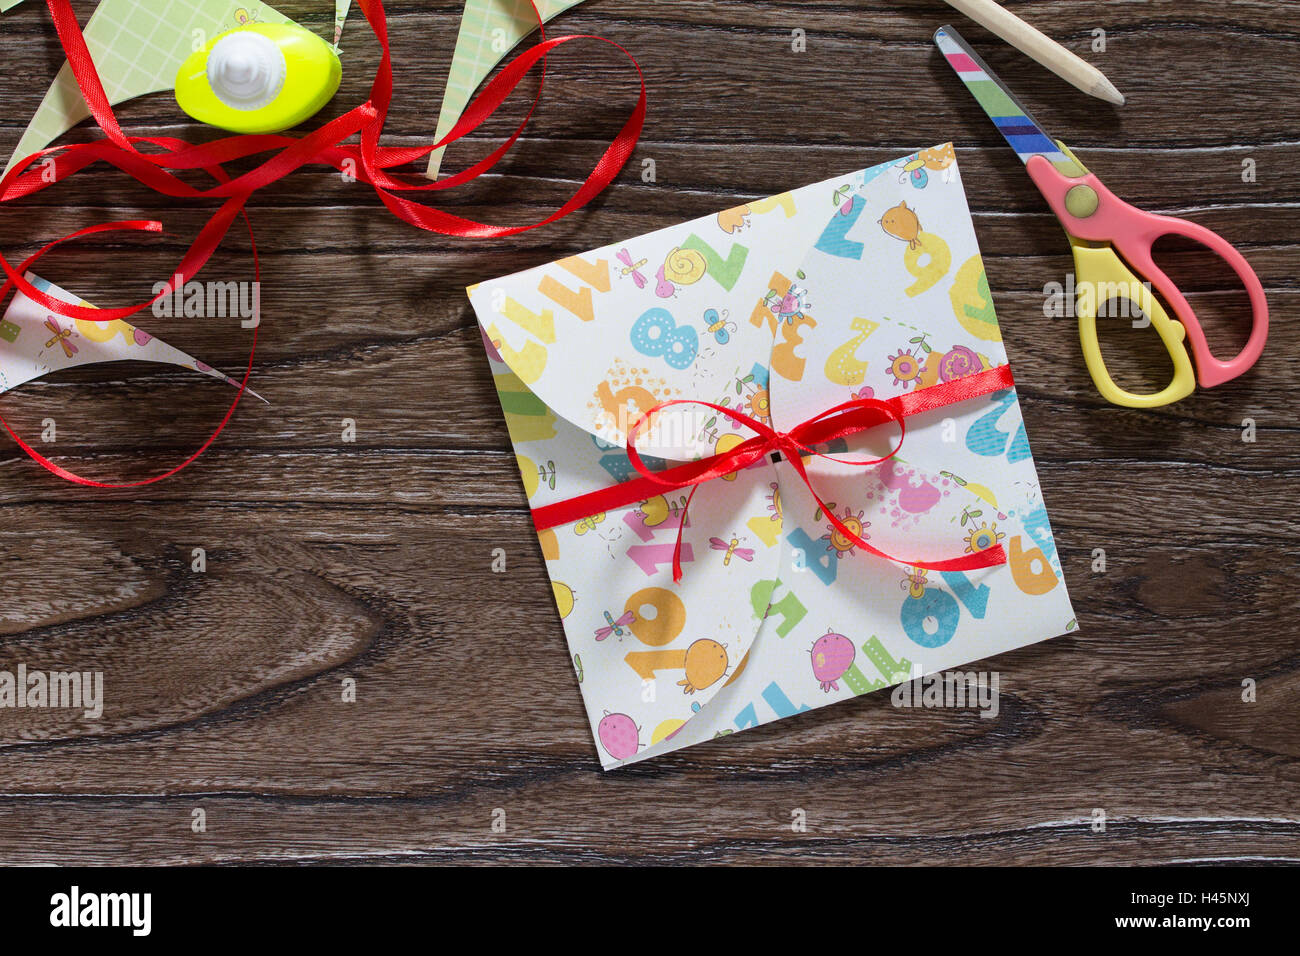 Birthday Card Handmade Sheets Of Paper Glue Scissors And Tape On A Wooden Table Childrens Art Project Craft For Children